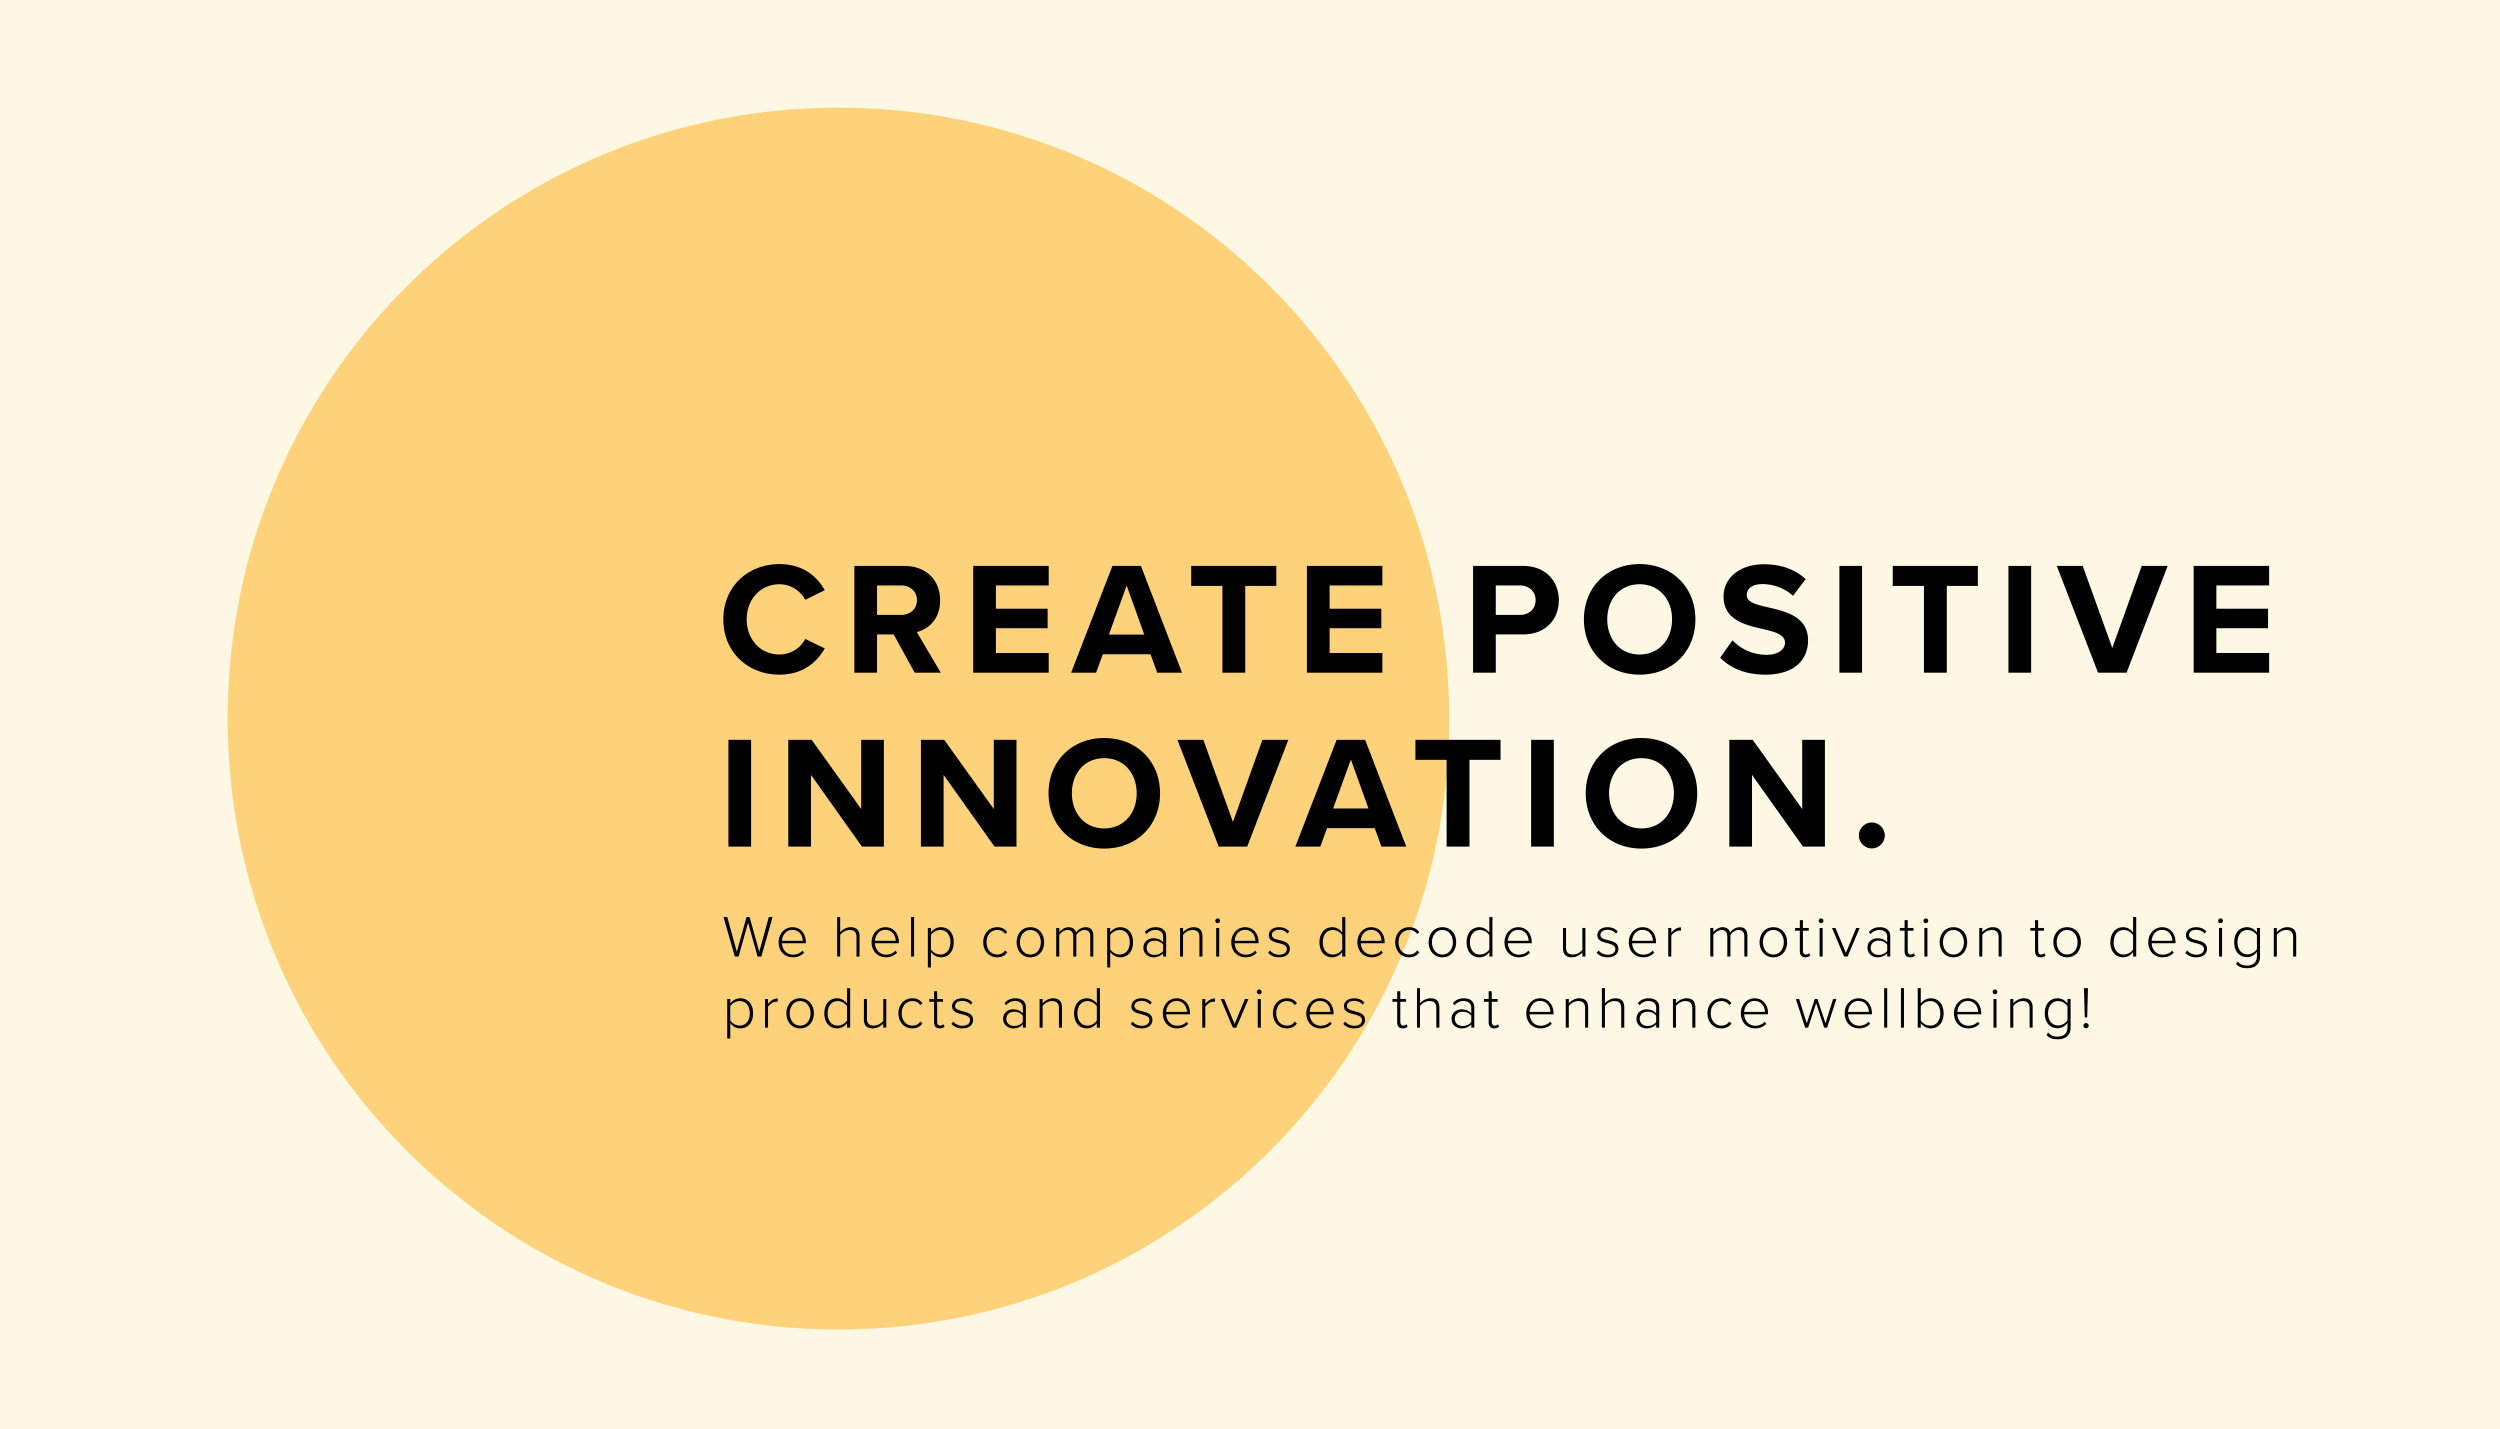 Create Positive Innovation.